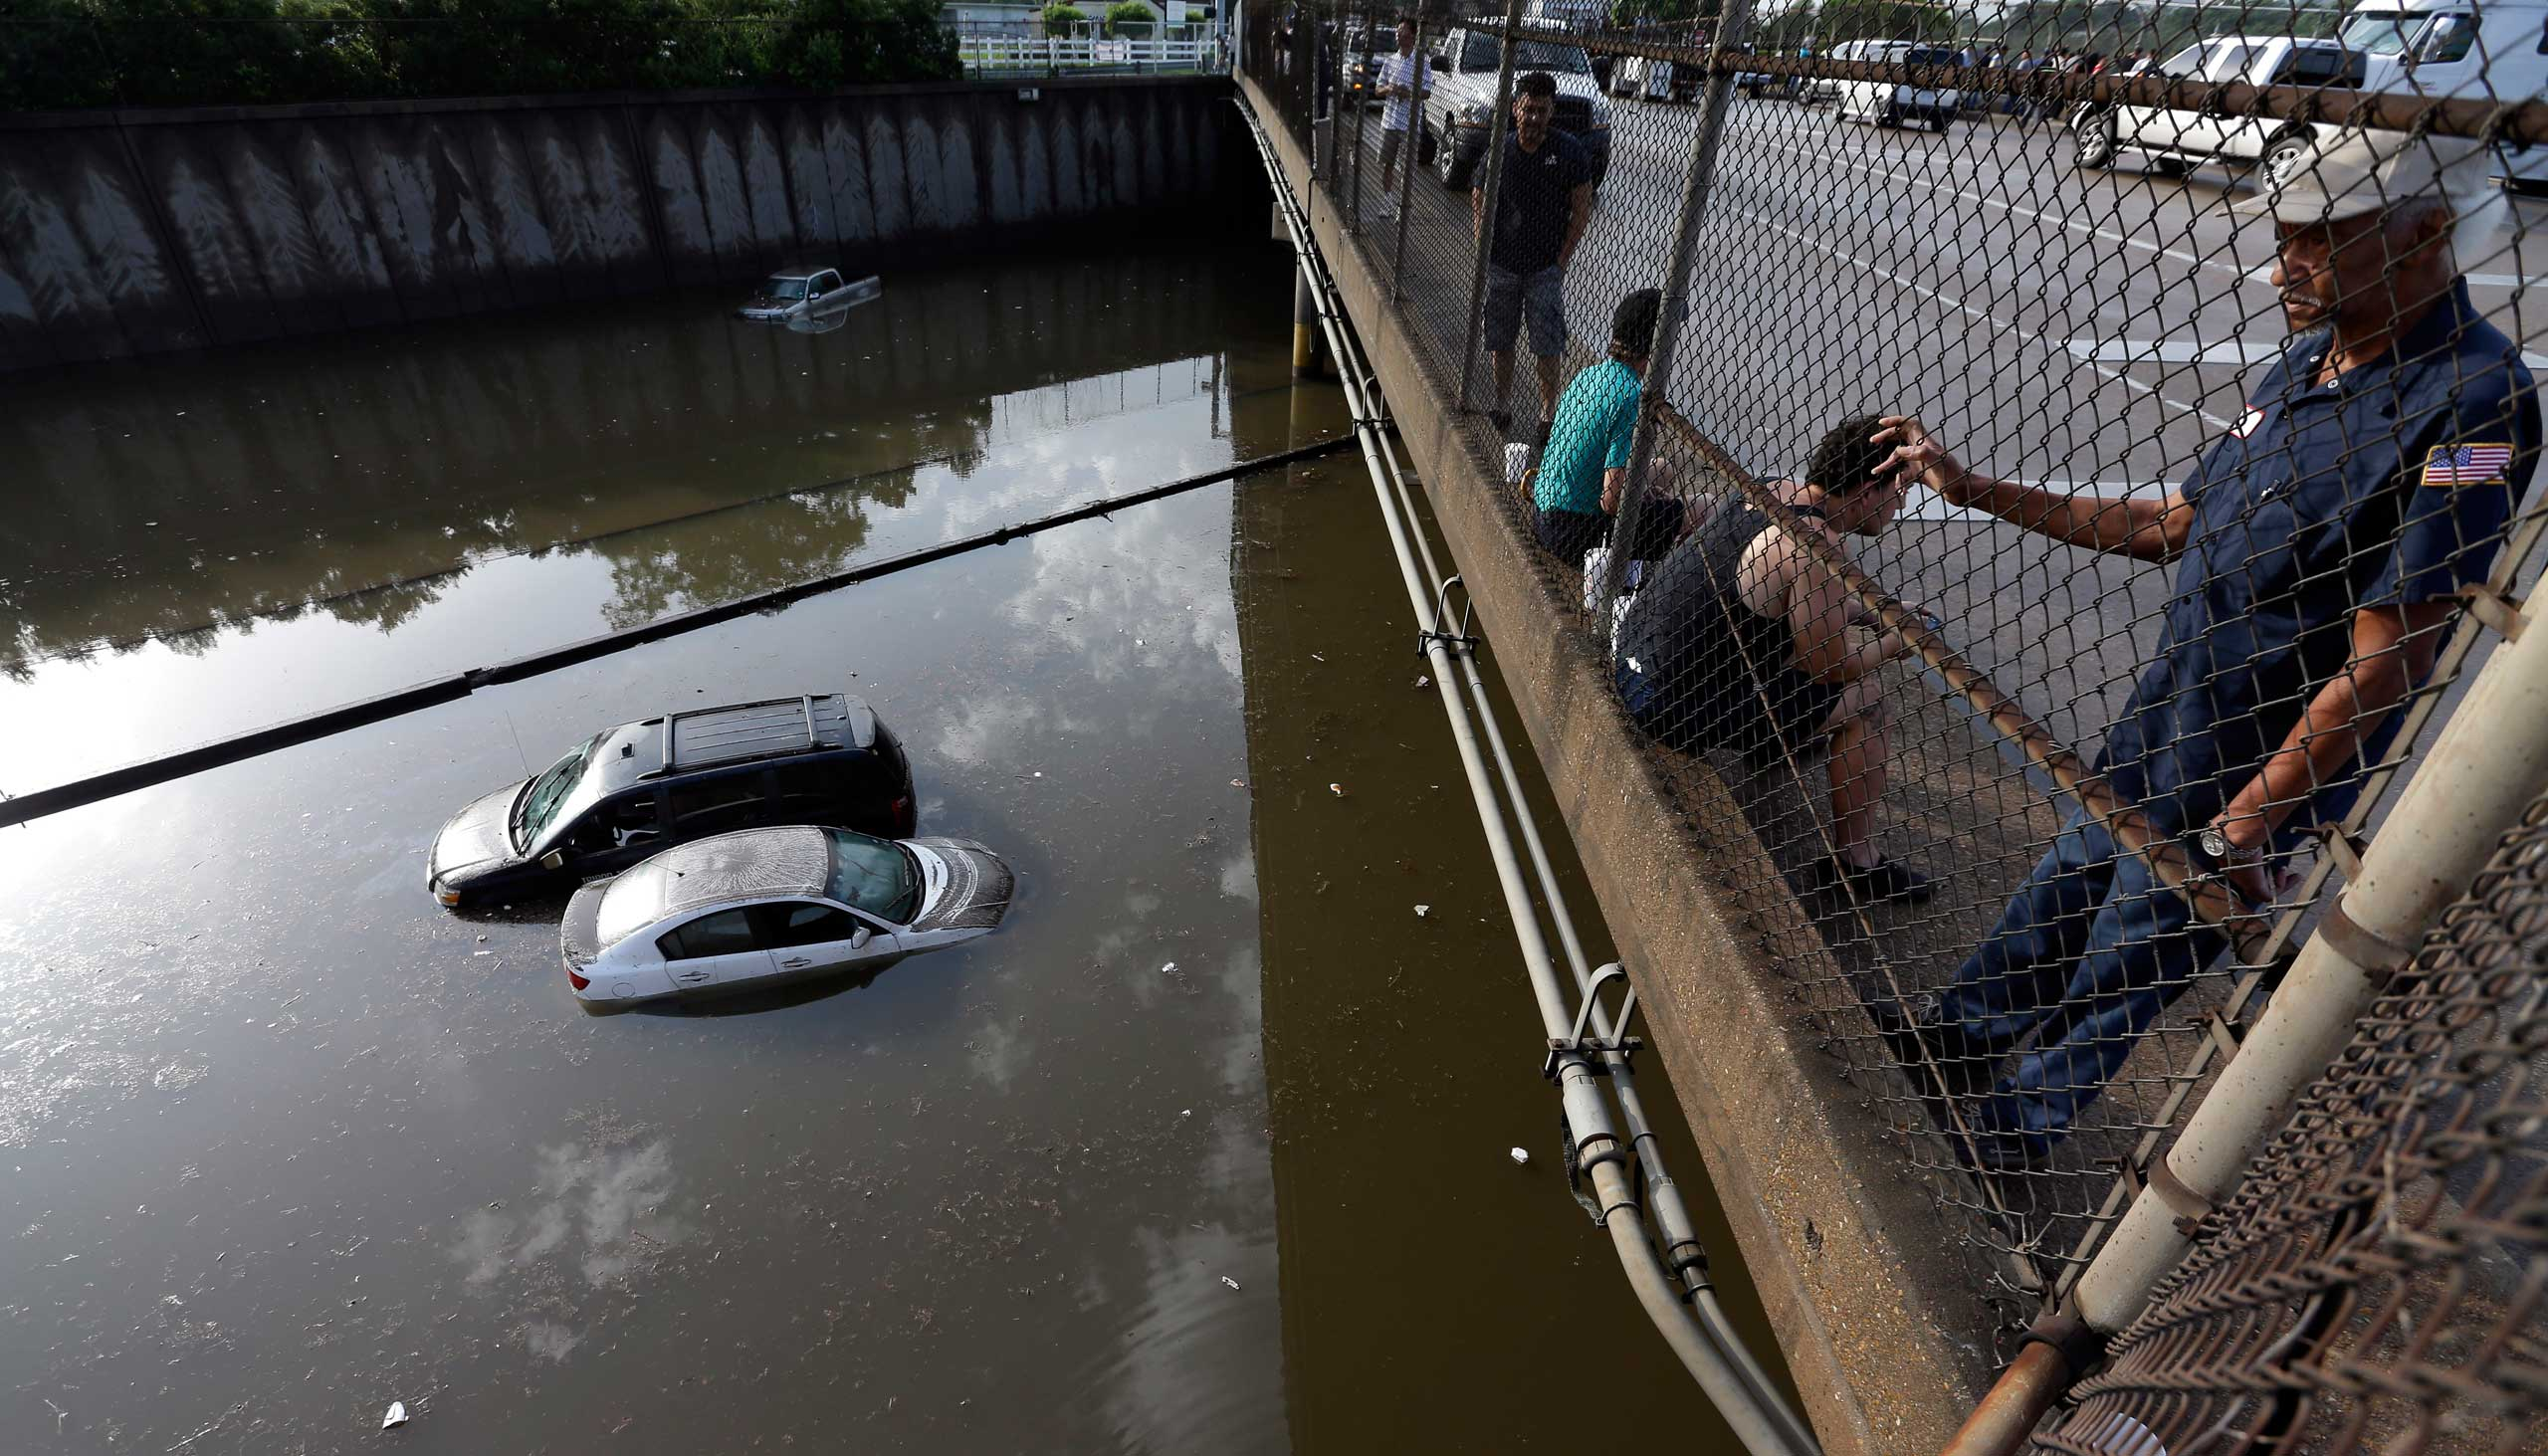 Cars sit in floodwaters along Interstate 45 after heavy overnight rain flooded parts of the highway in Houston on May 26, 2015.